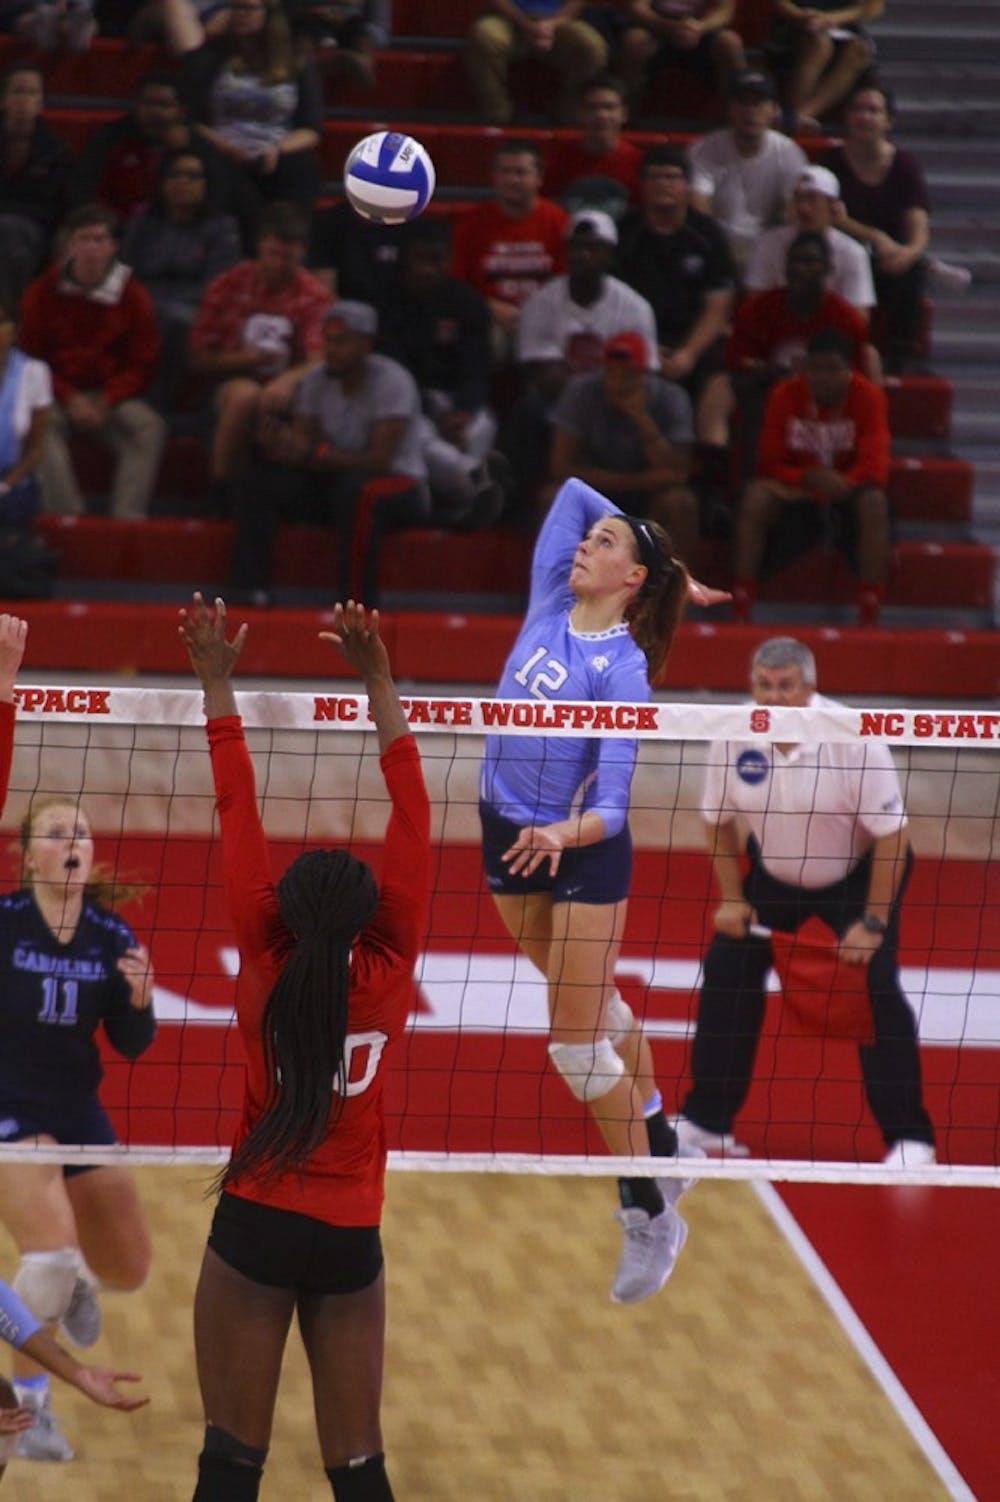 UNC volleyball shows promise for next season in 3-1 win over N.C. State